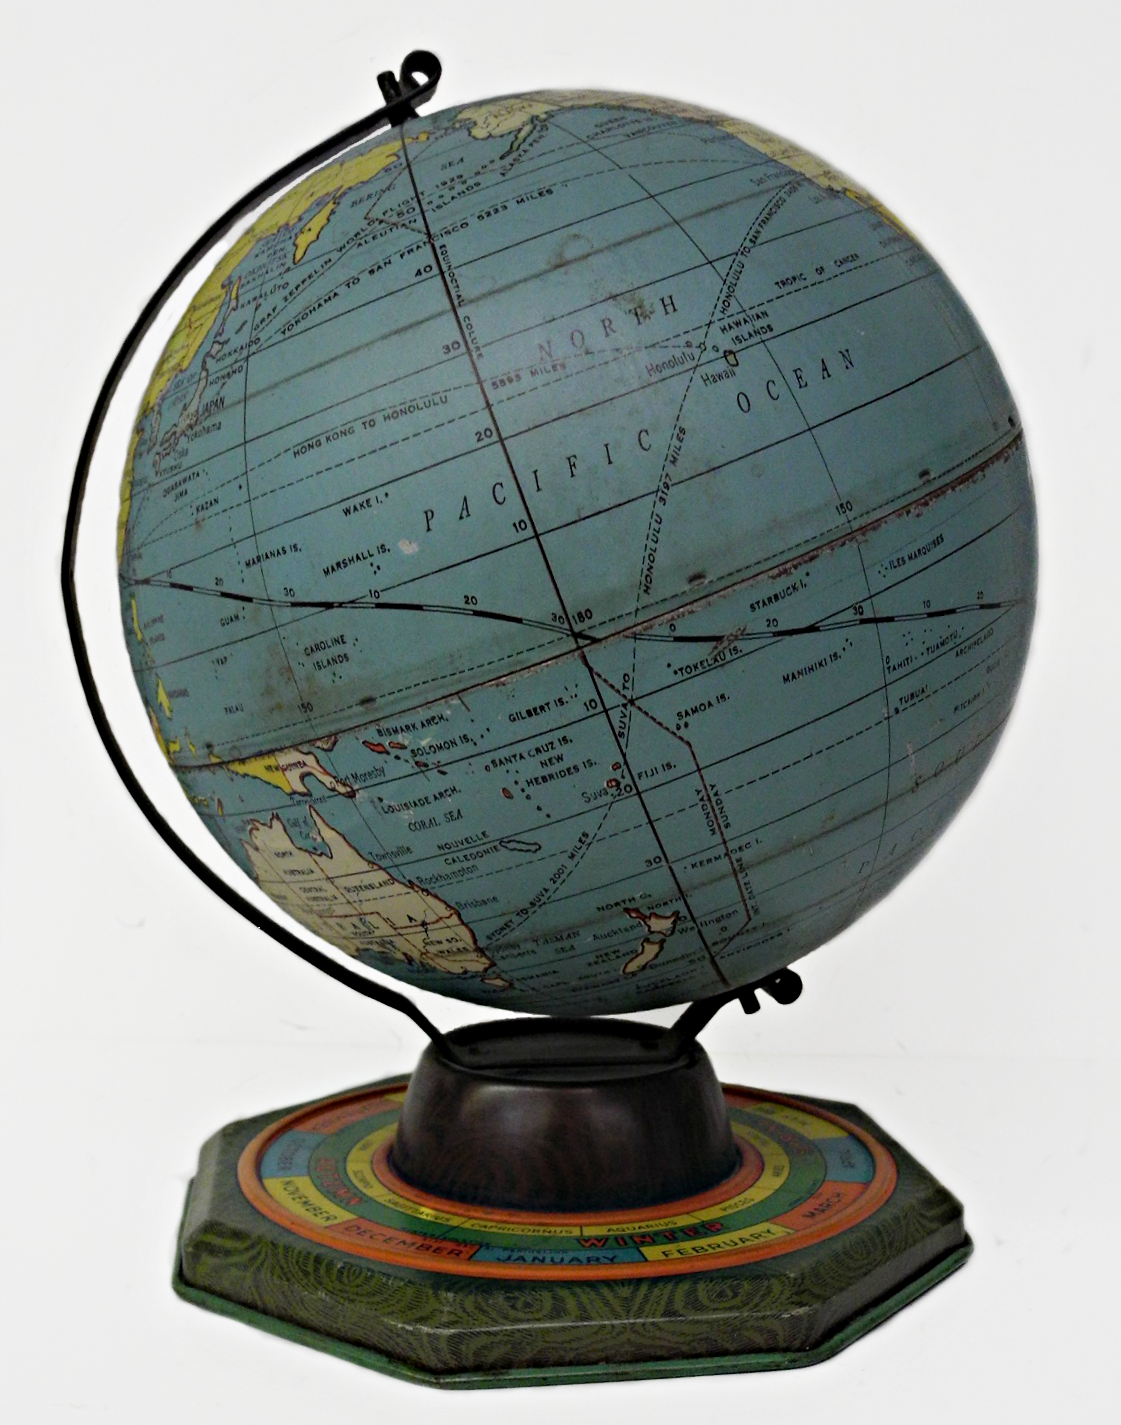 7 inch world globe, Globe Maker: J. Chein & Co. (Published: J. Chein & Co. c1930. Burlington, NJ)